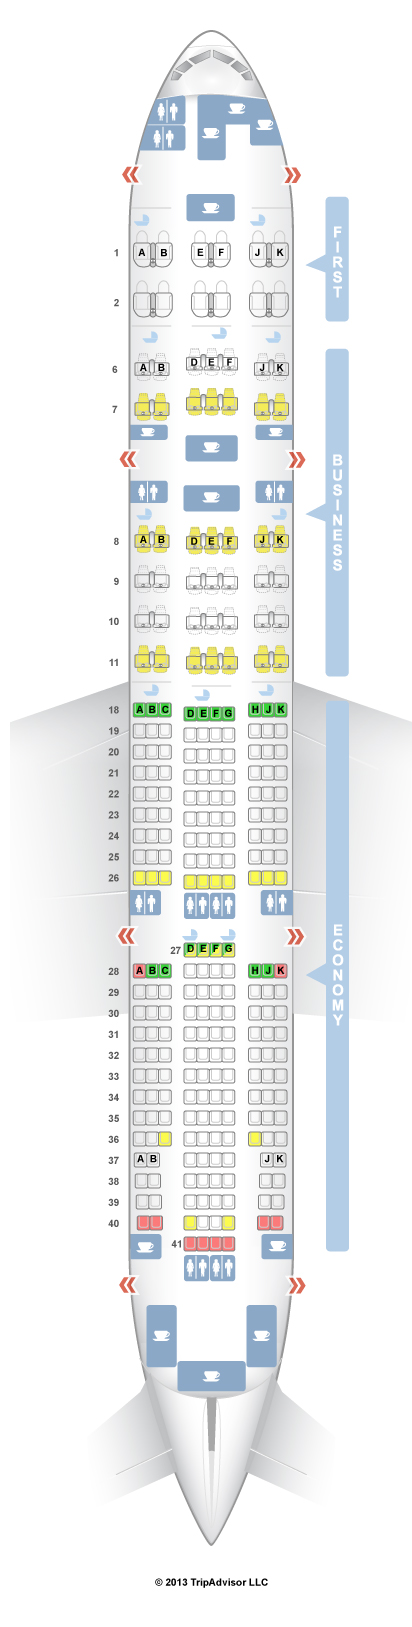 777 aircraft seating plan femous aircraft 2017